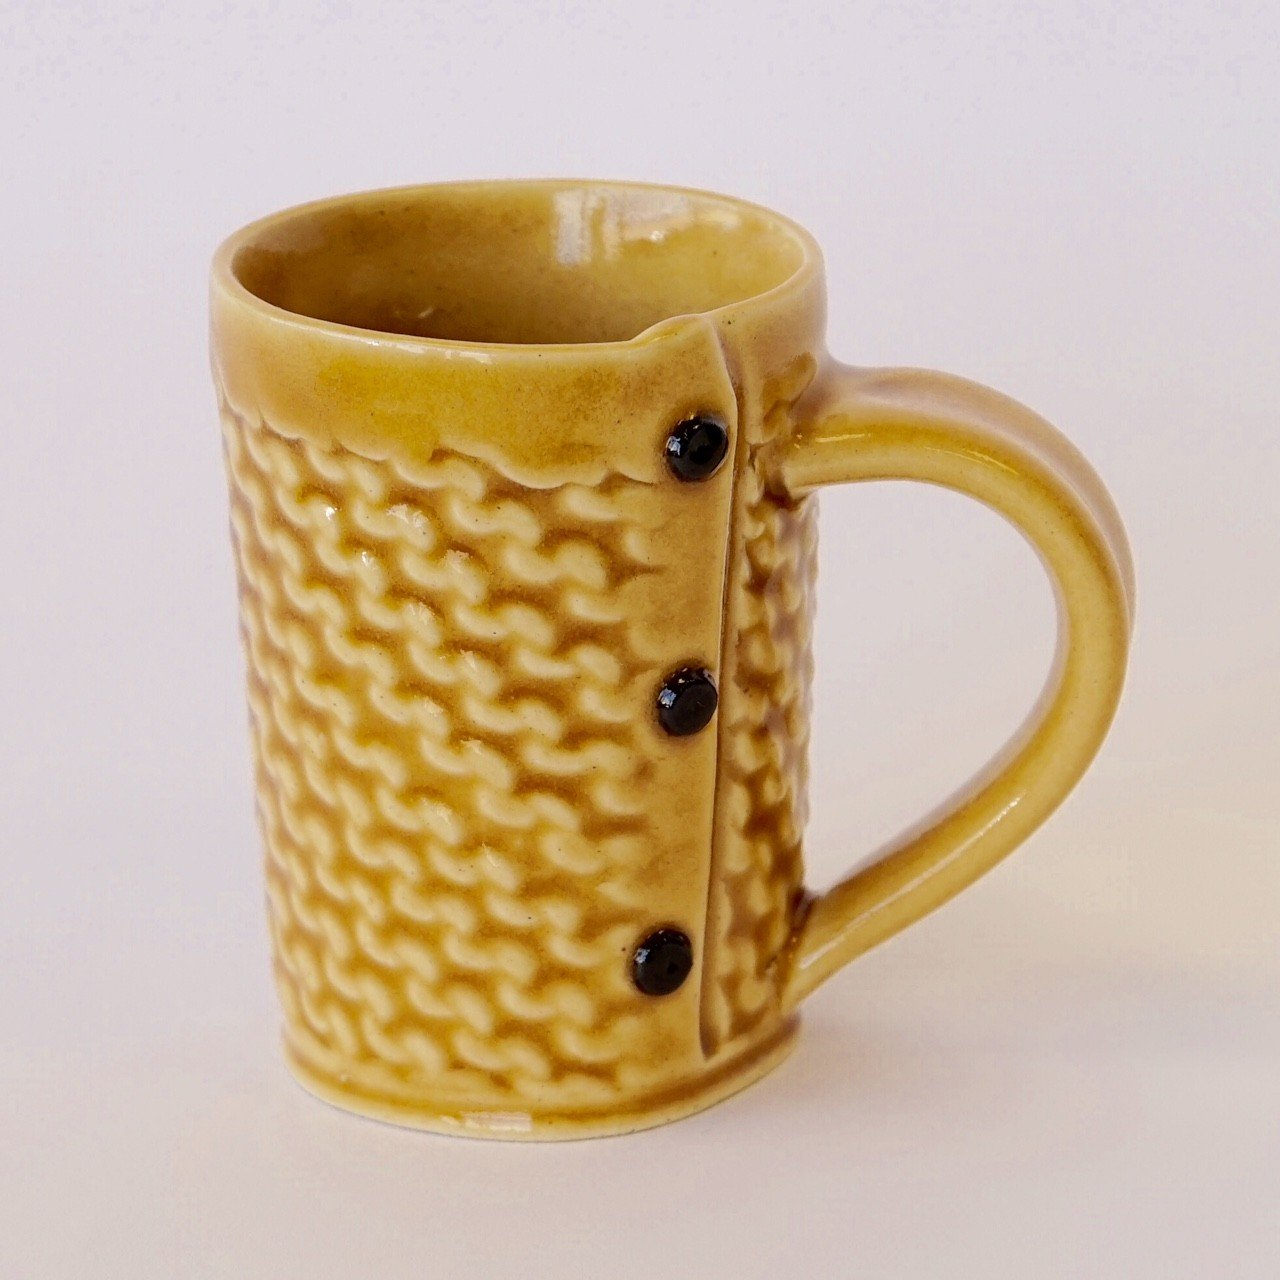 Creative with Clay Medium Tea Mug - Garter Stitch